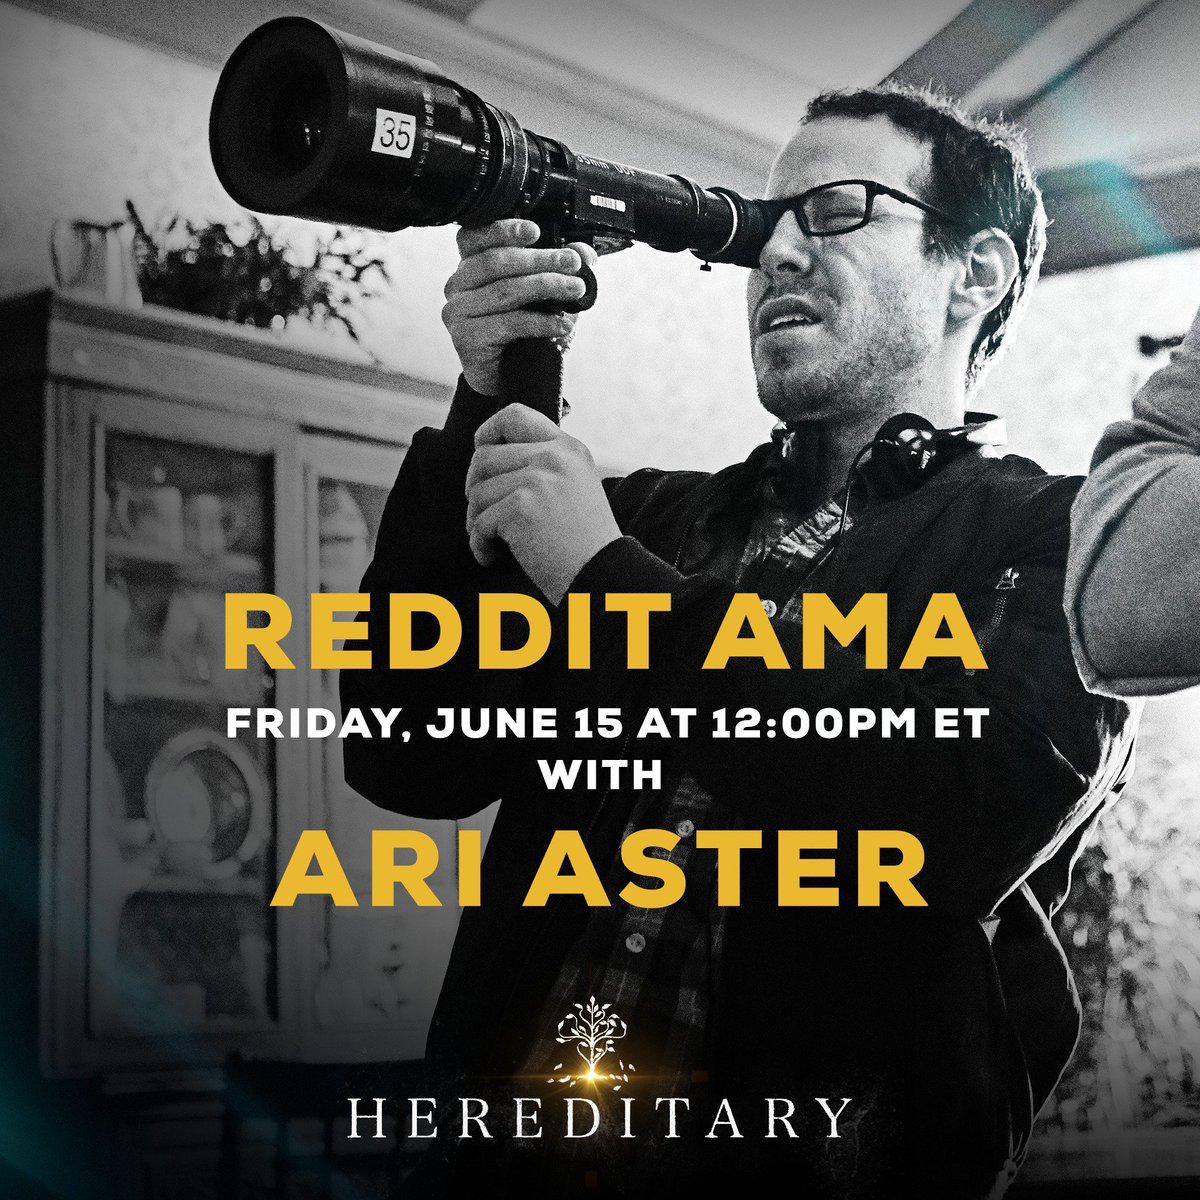 Hereditary On Twitter You Have Questions He Has Answers Join